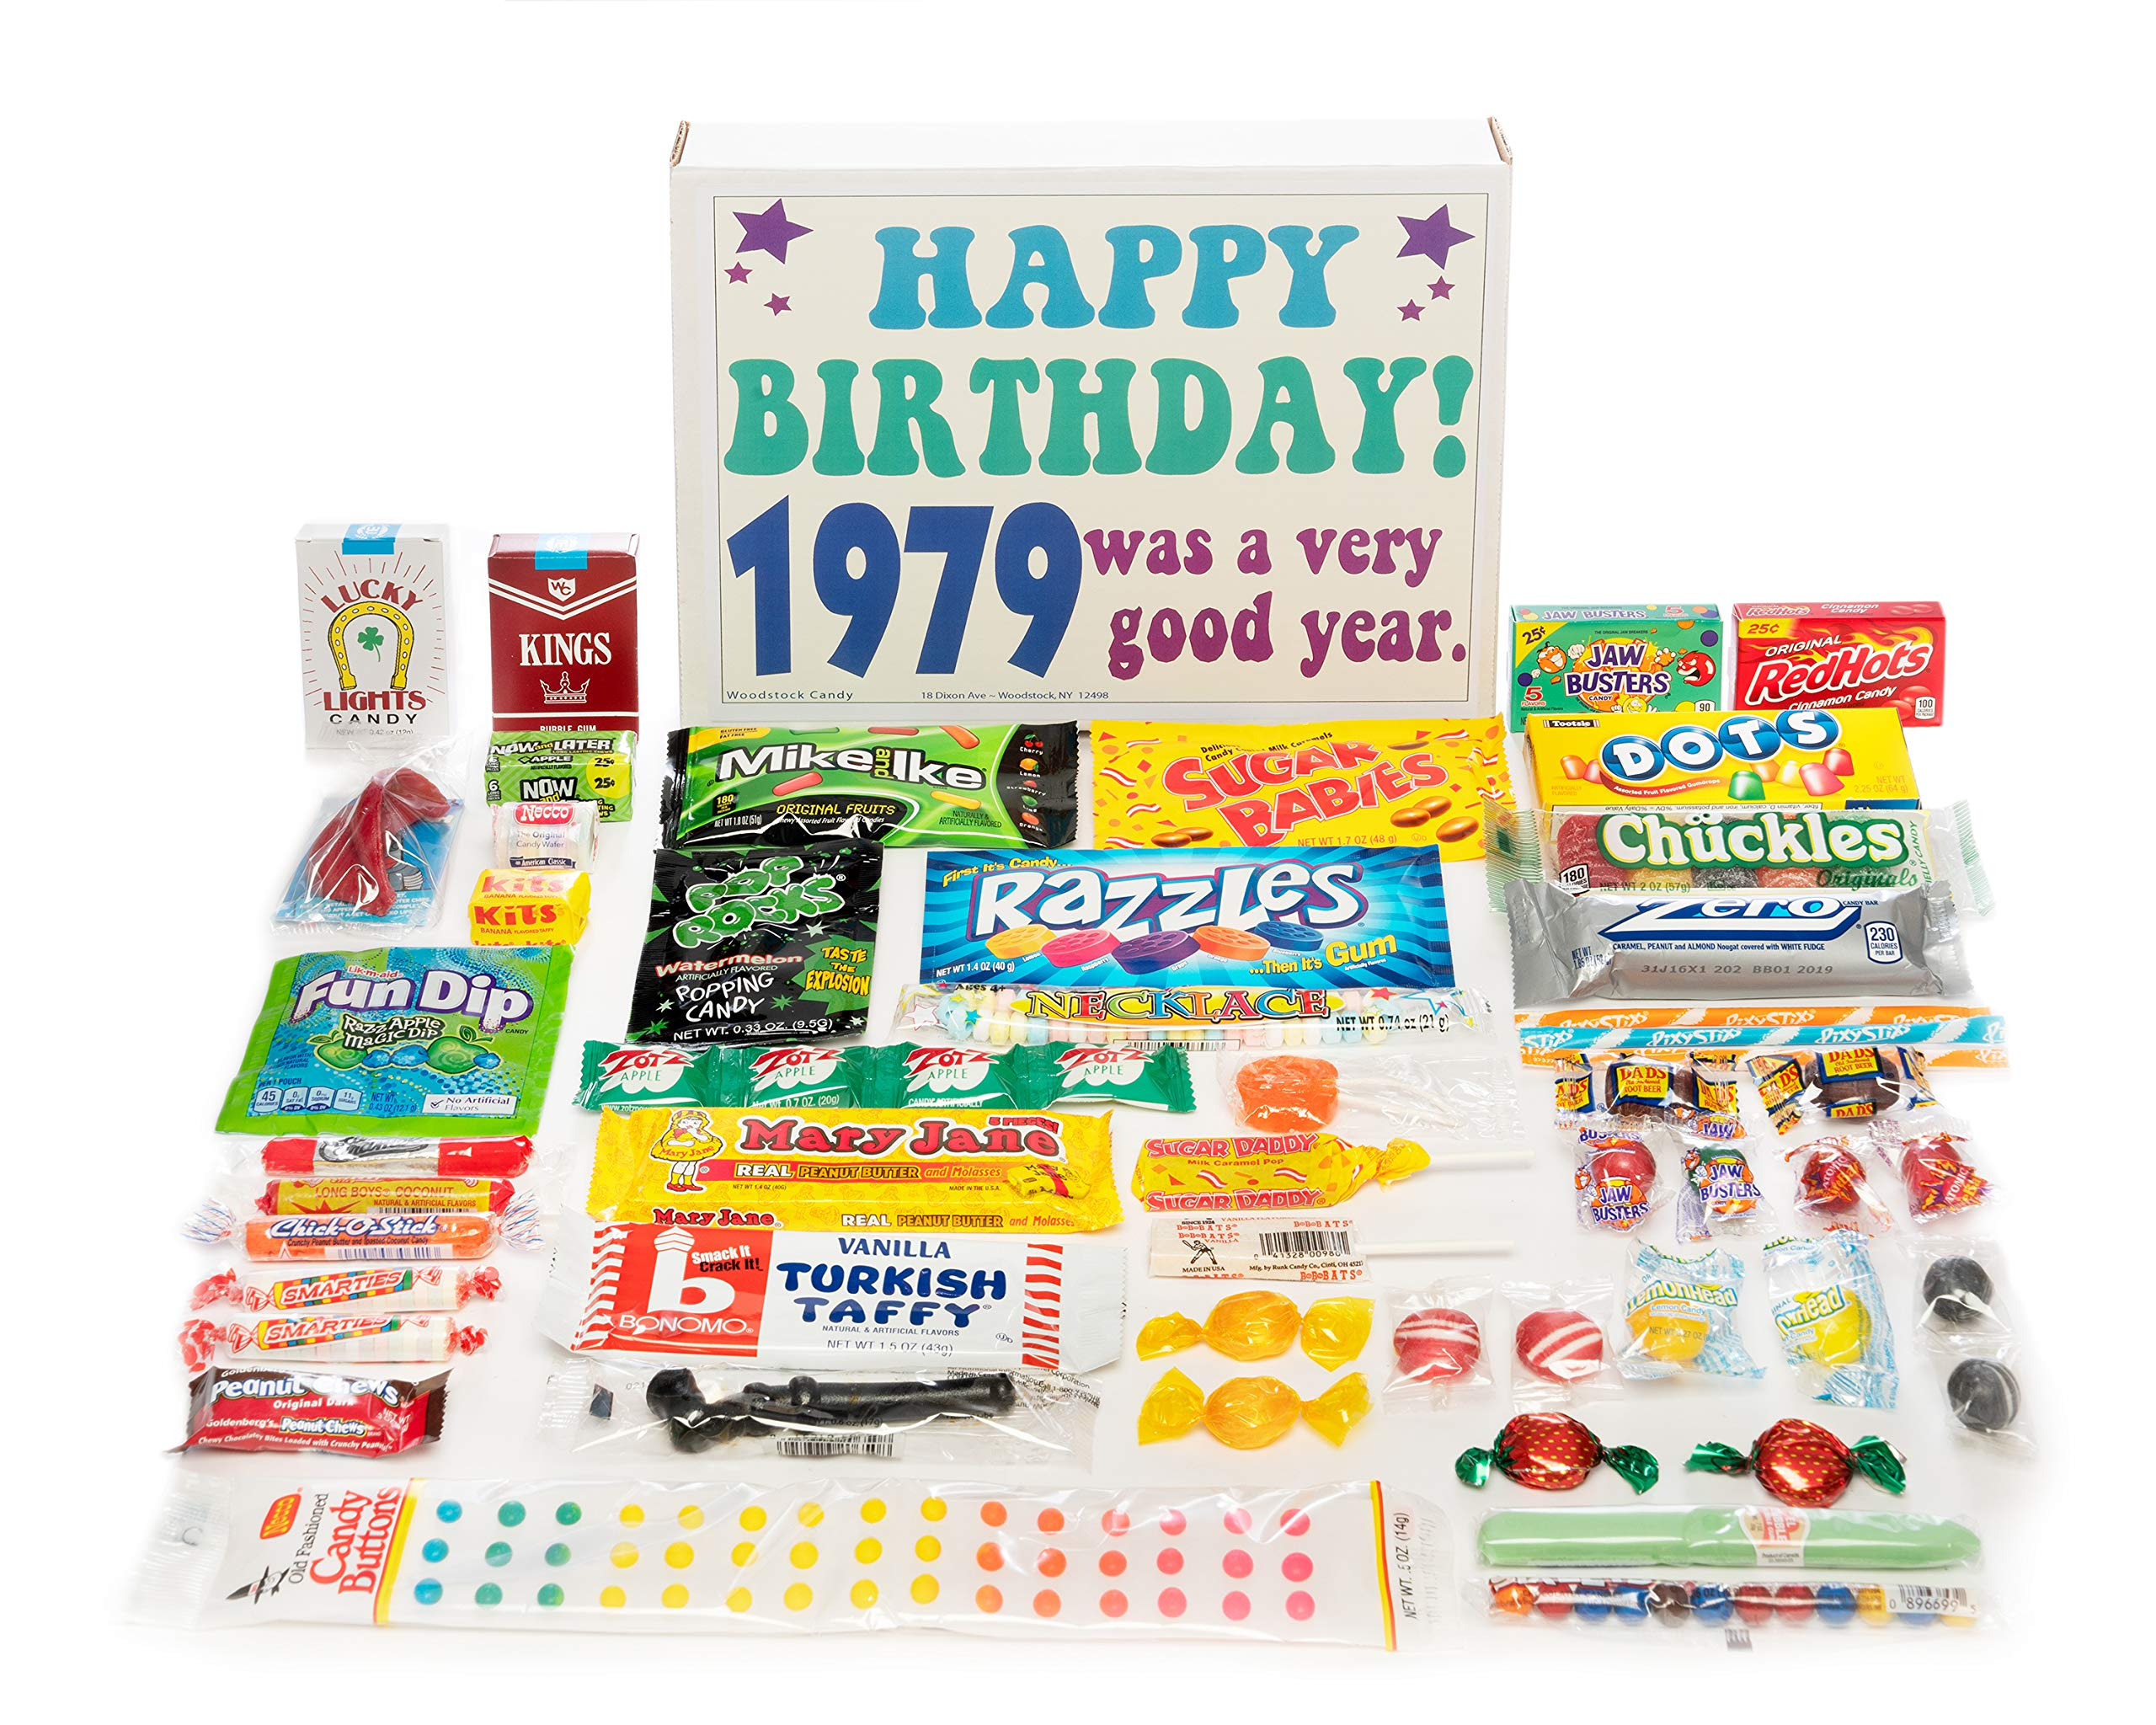 Woodstock Candy ~ 1979 40th Birthday Gift Box Retro Vintage Candy Assortment from Childhood for 40 Year Old Man or Woman Born 1979